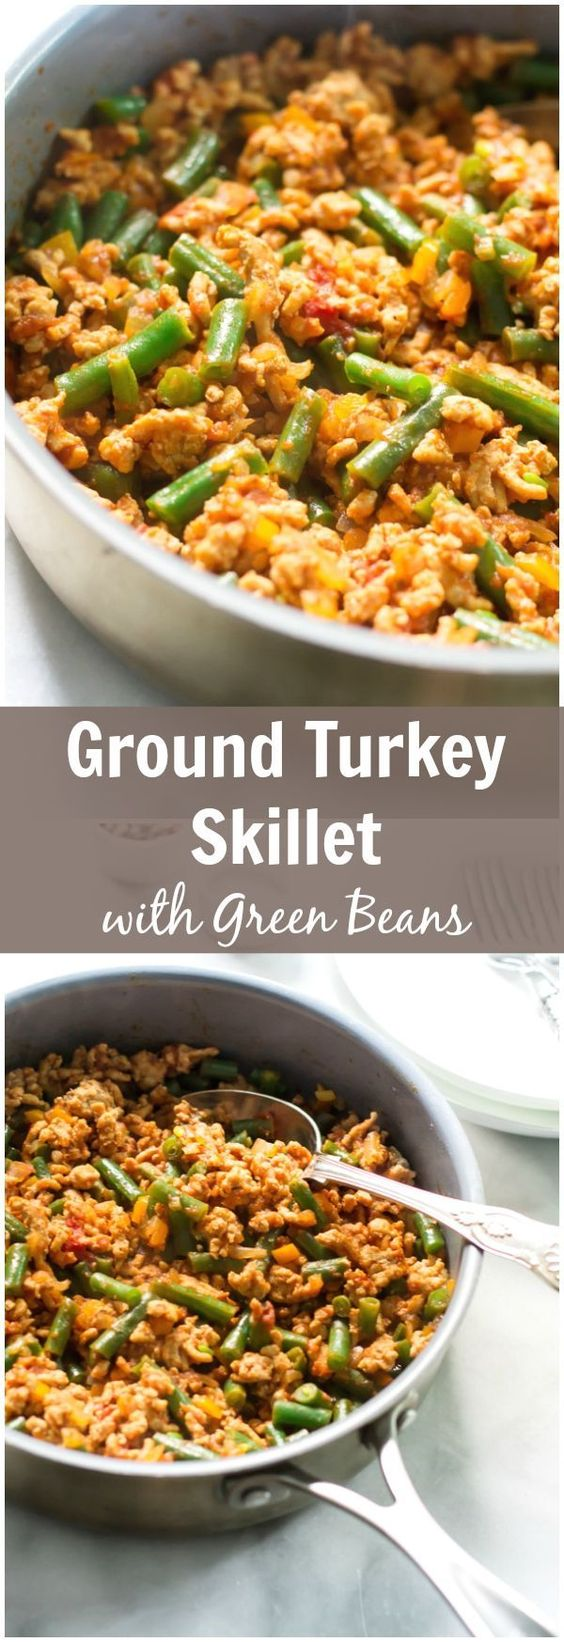 Ground Turkey Skillet with Green Beans | Recipe | Ground Turkey, Beans ...